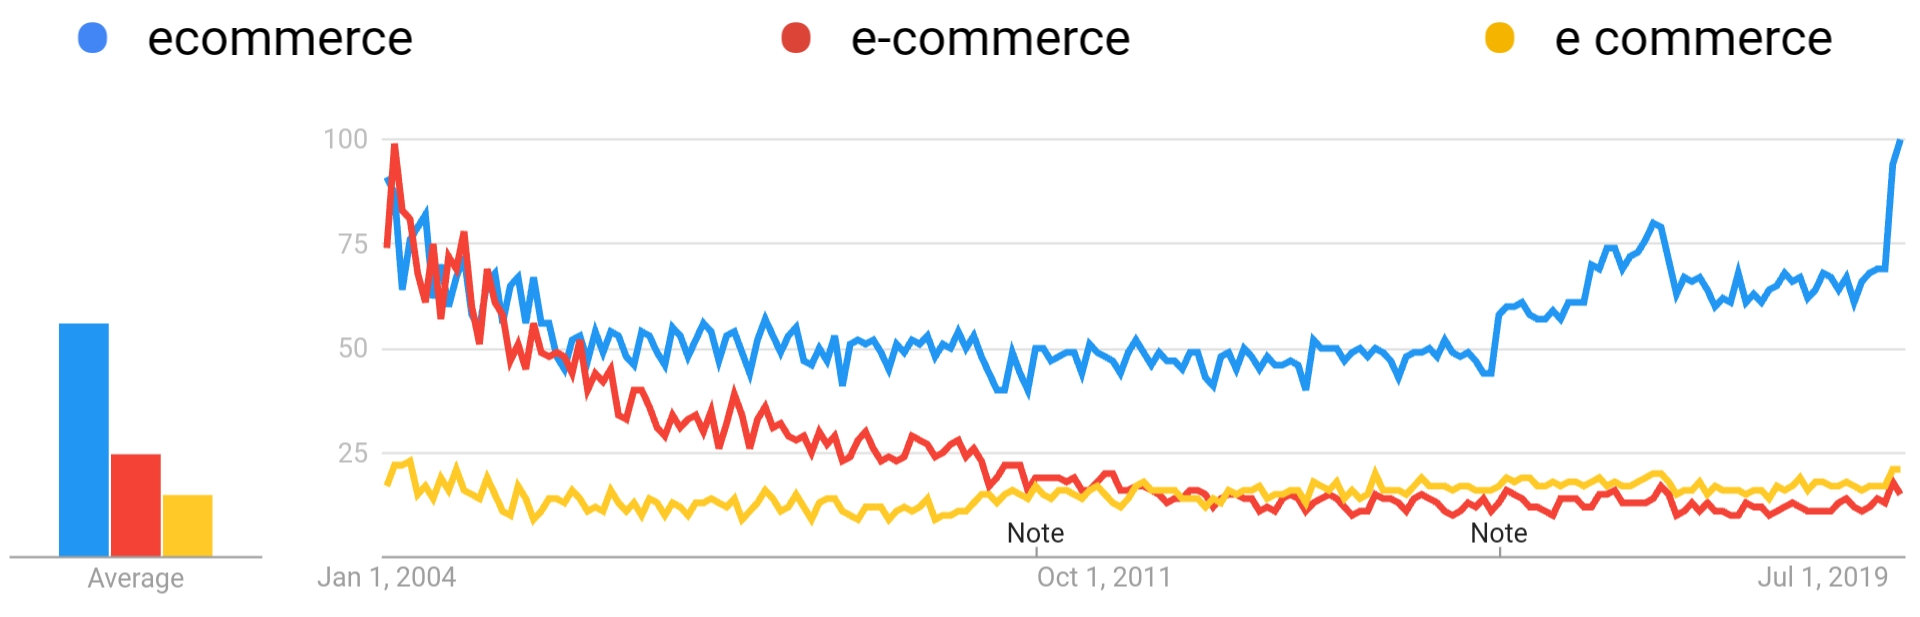 How To Spell Ecommerce, E-commerce or E Commerce